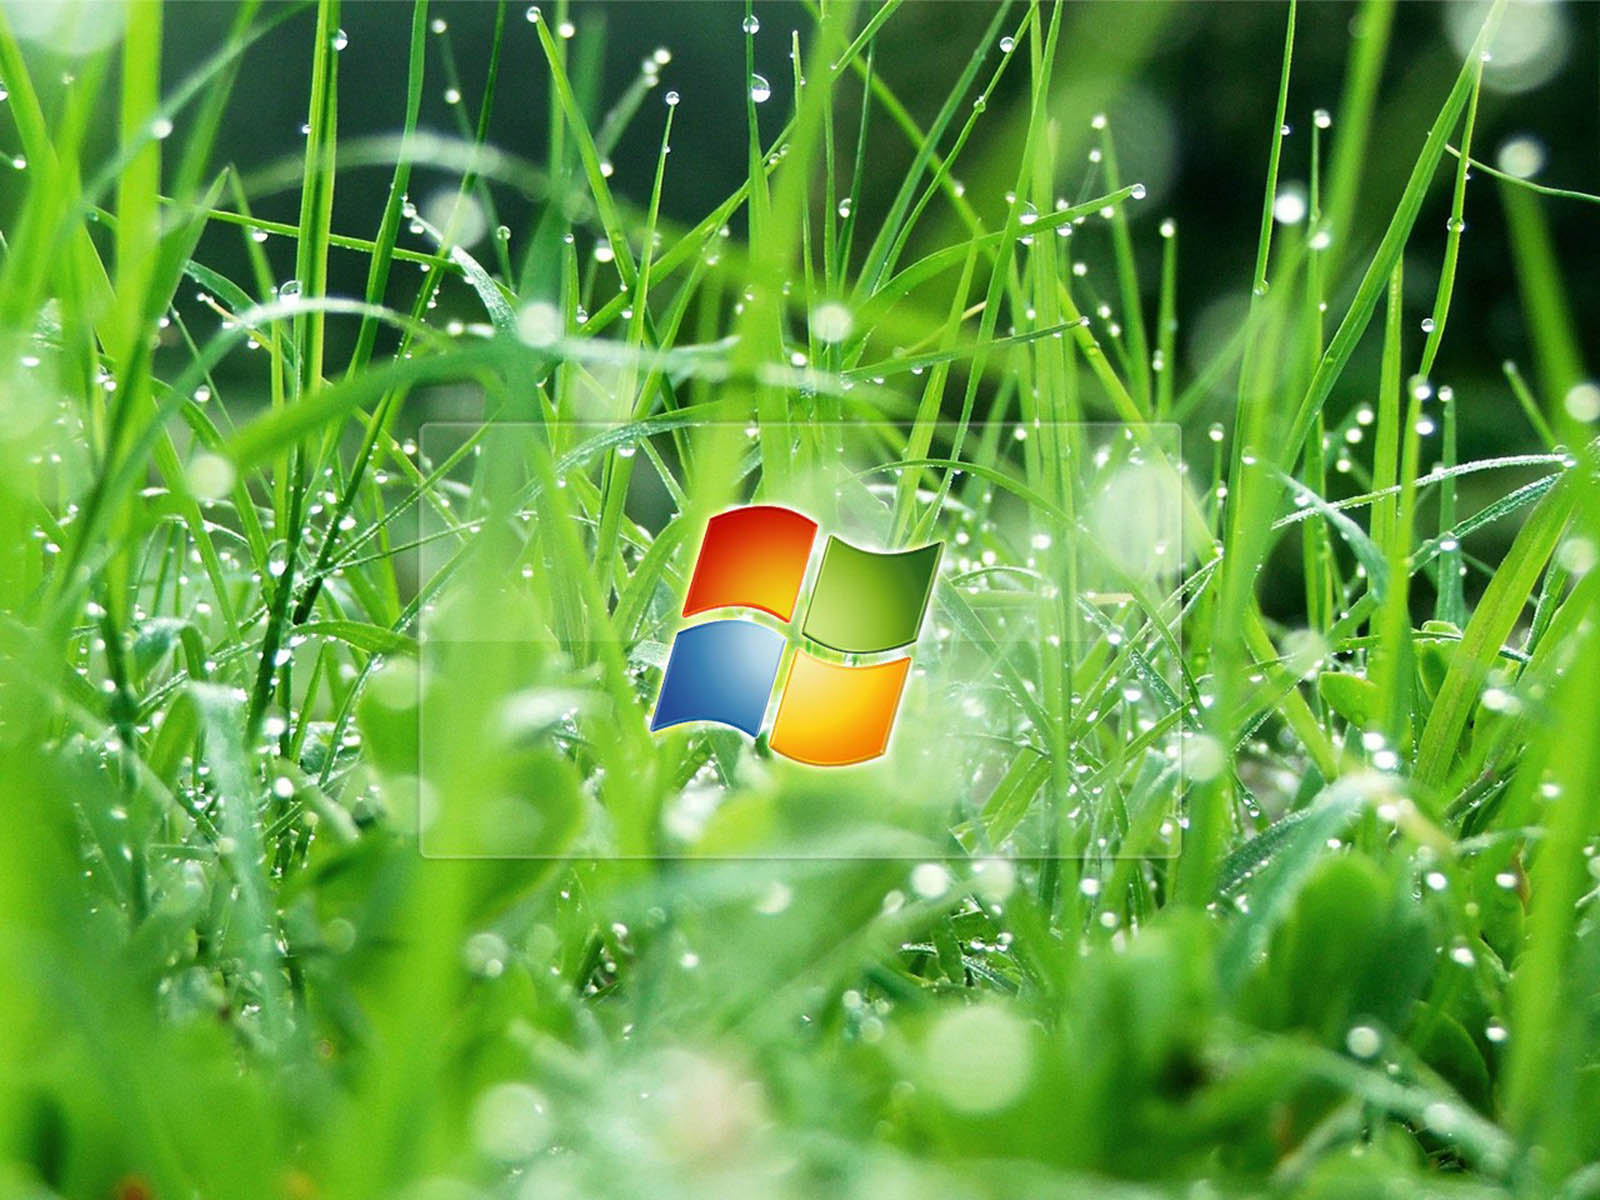 Windows Vista 3d Wallpaper Download For Desktop 1280x1024 Wallpaper Teahub Io